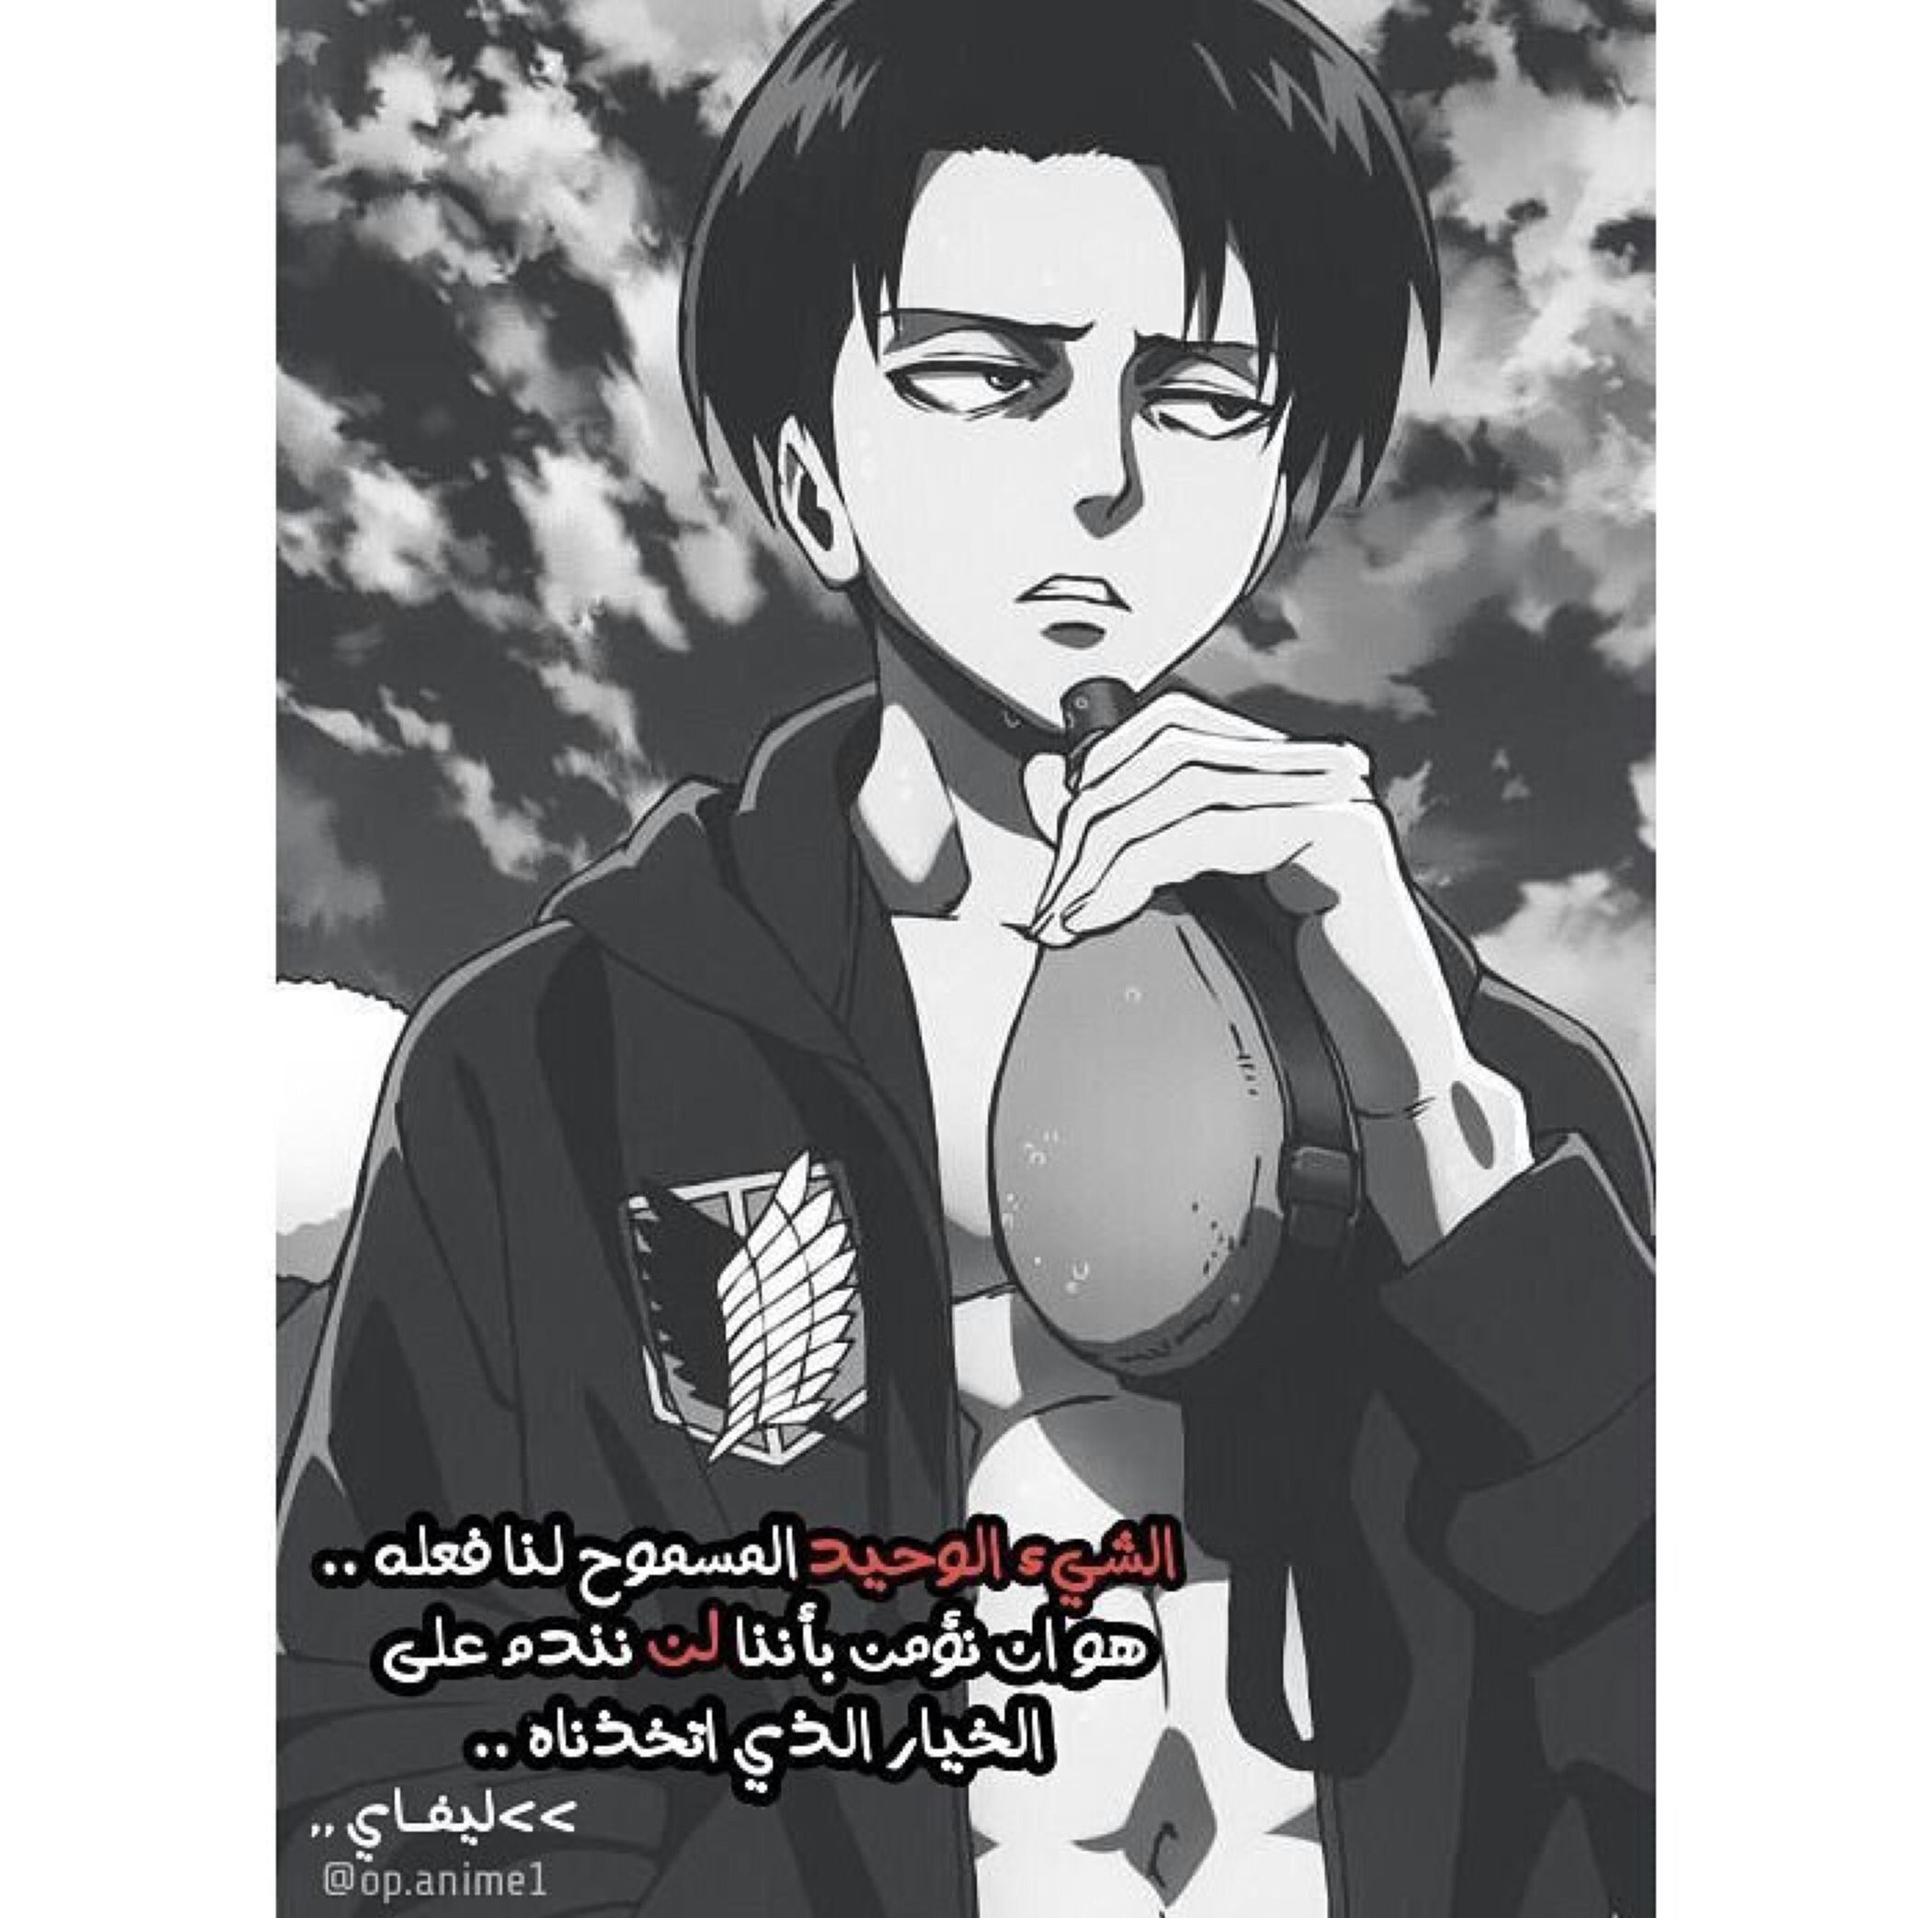 Pin By 92707202 On Anime Anime Quotes Anime Funny Beautiful Words